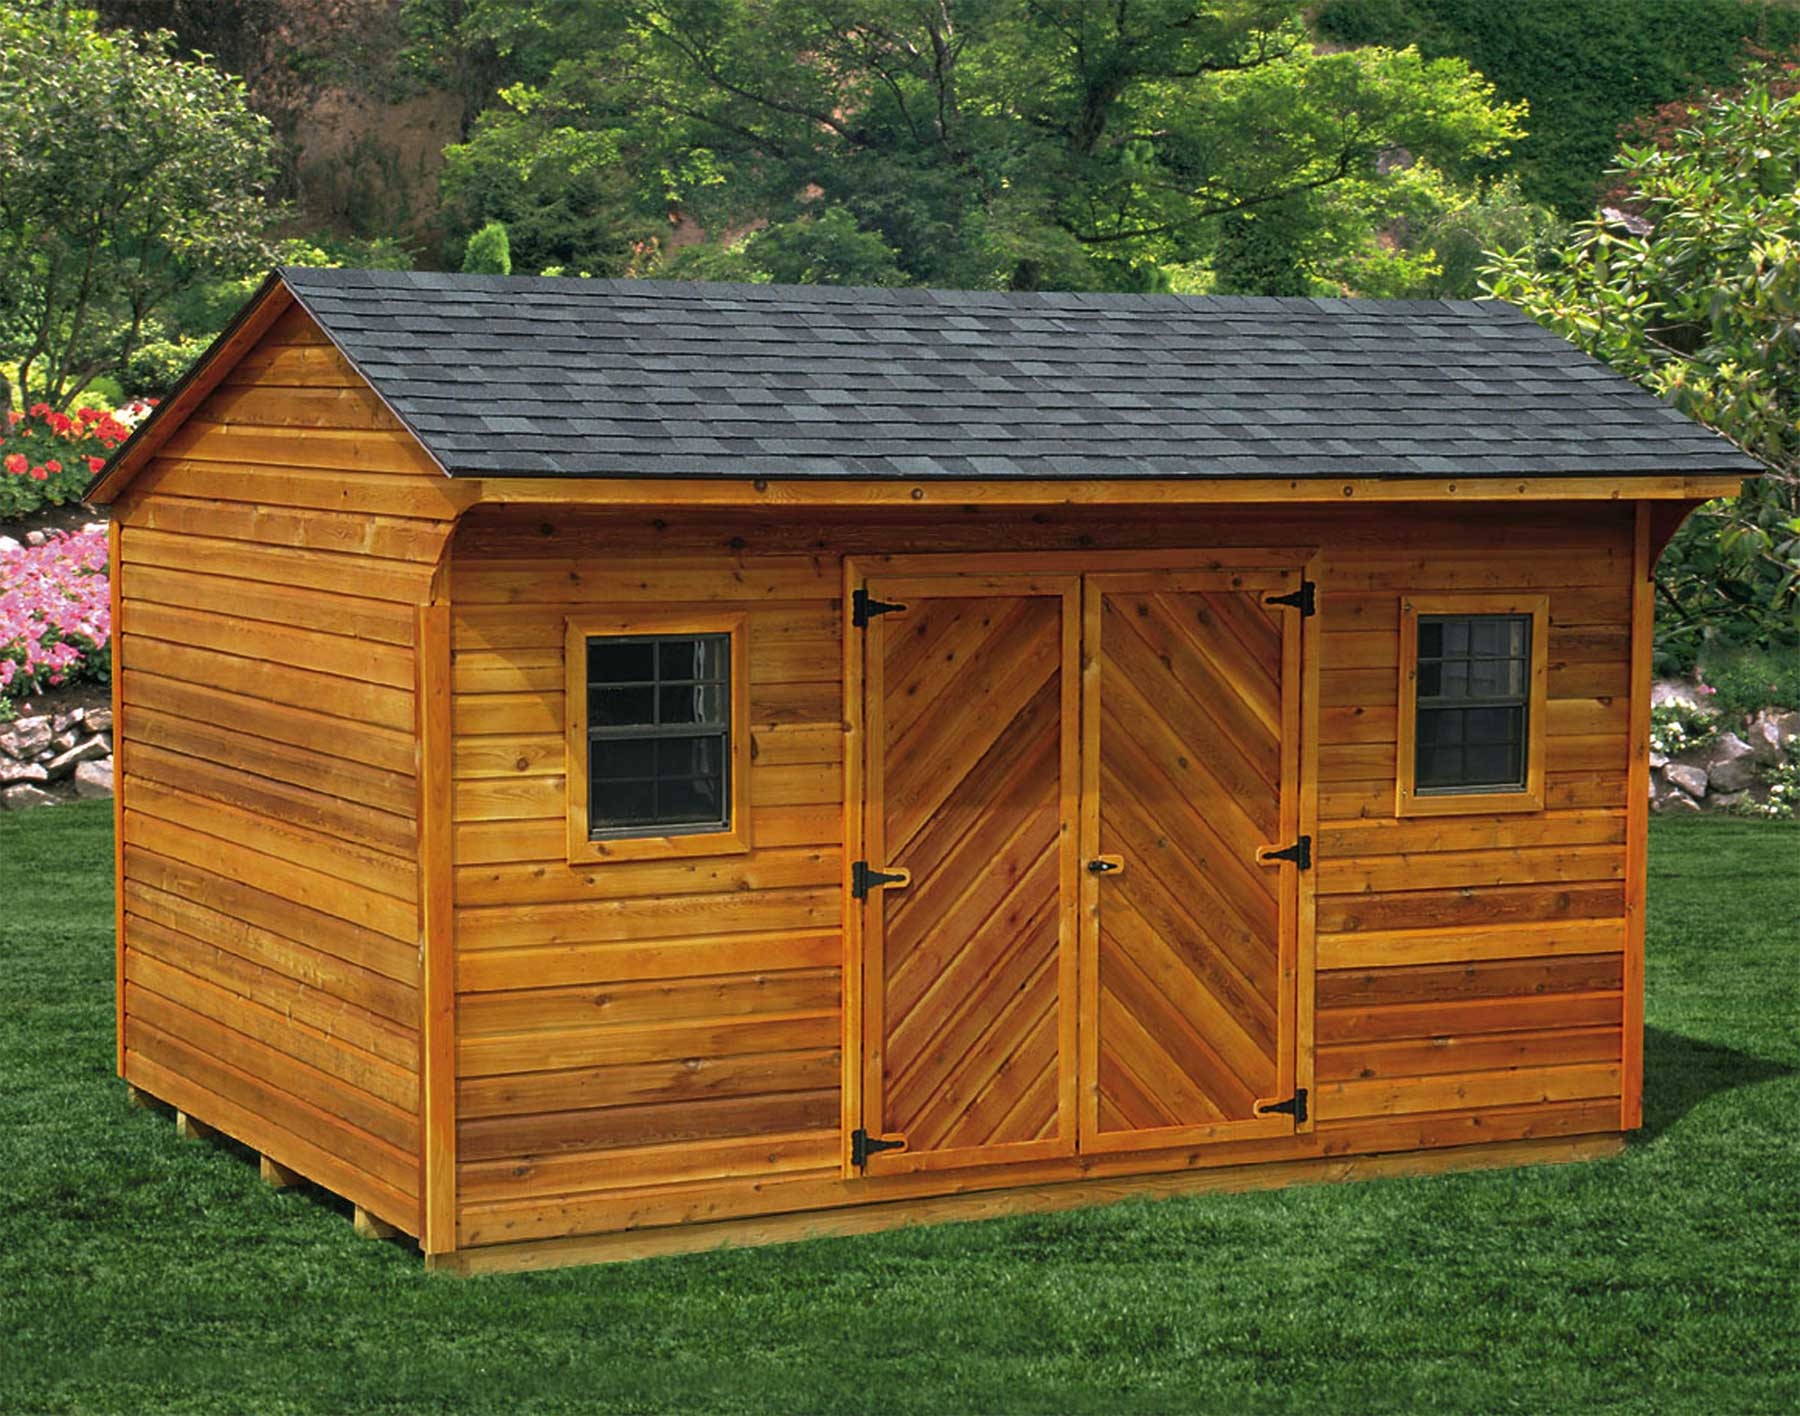 Outdoor Sheds Walmart | Outdoor Sheds for Sale | Rubbermaid Storage Sheds